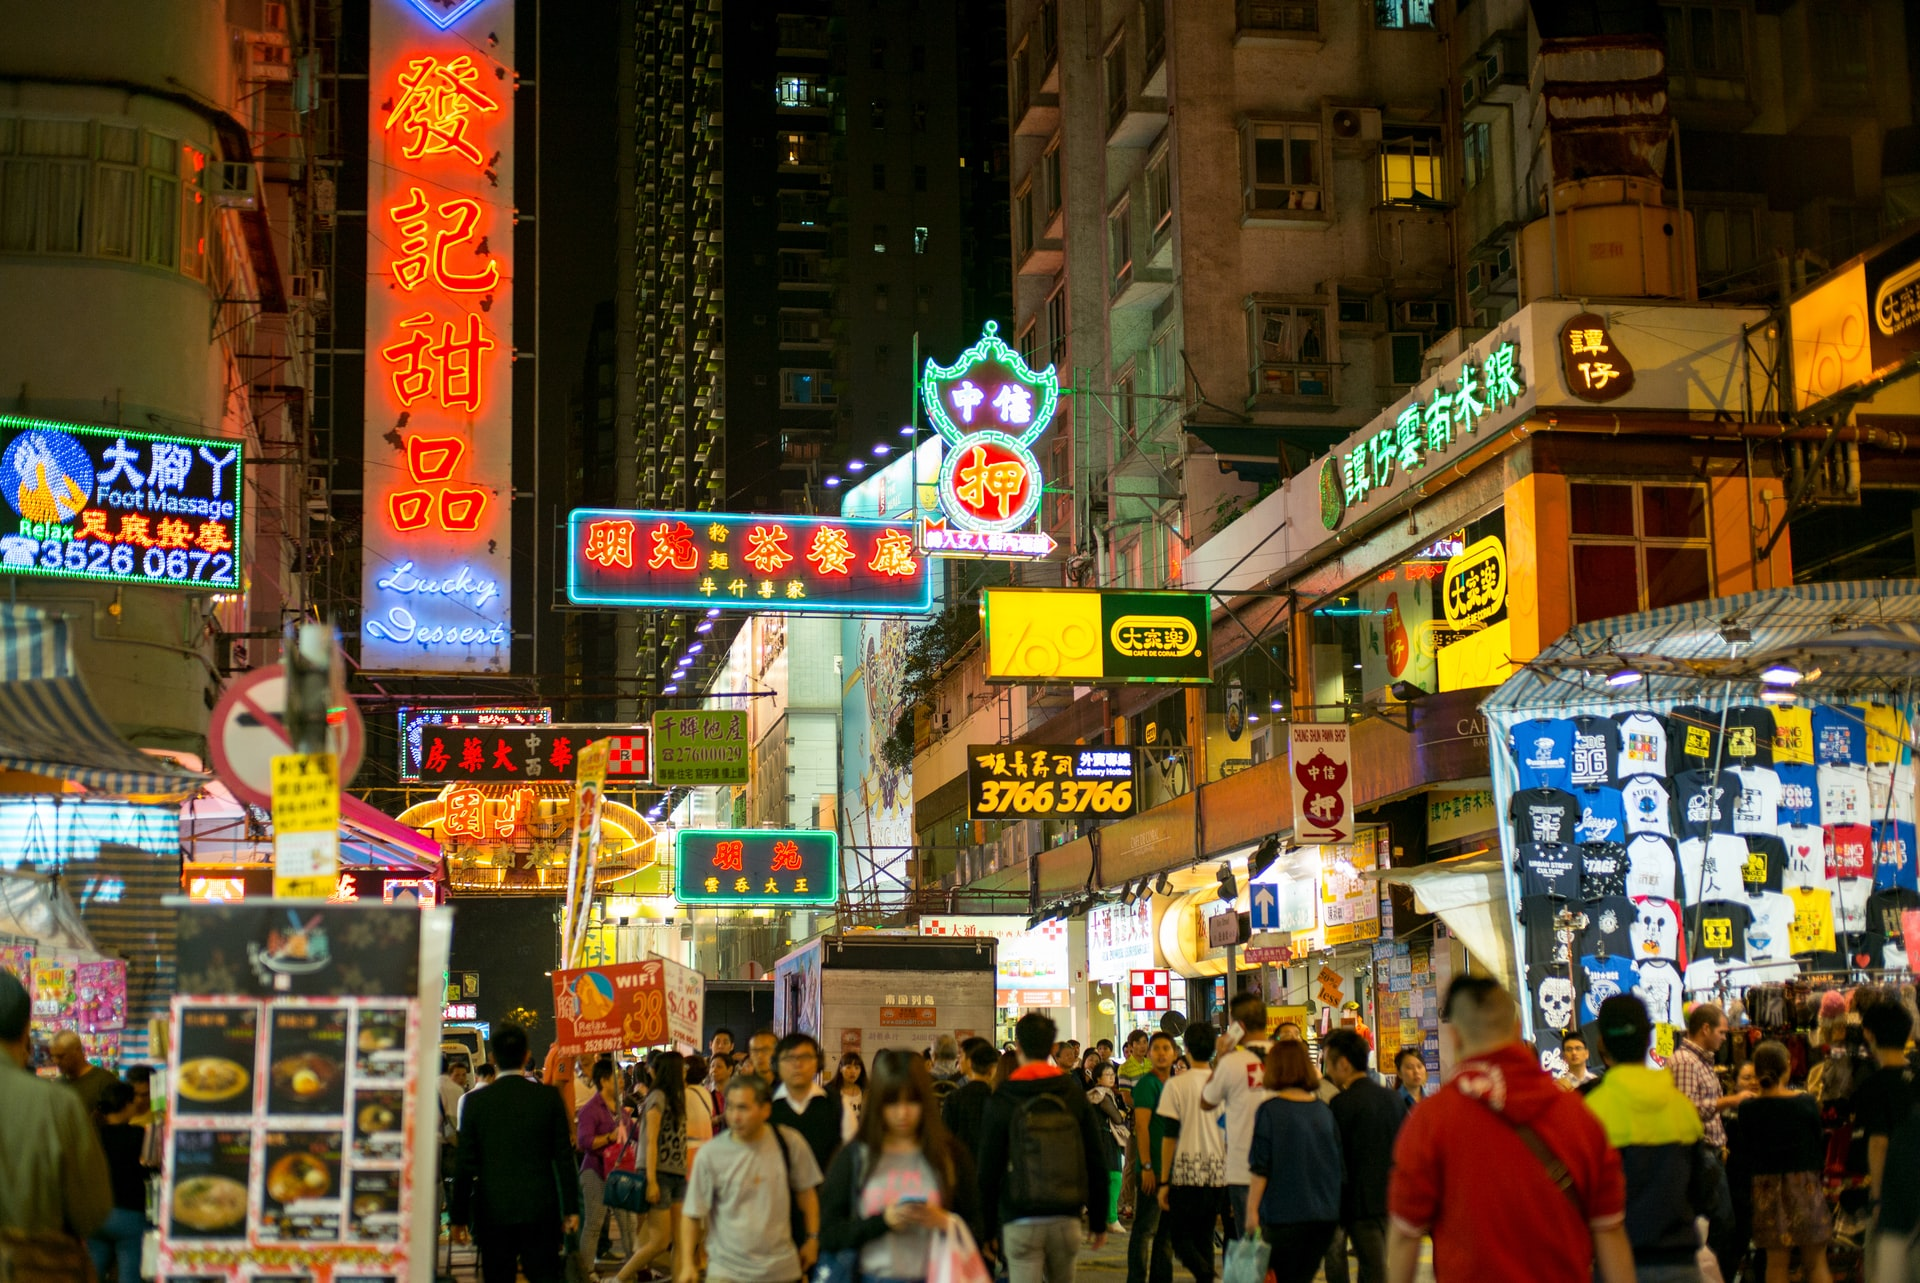 A day in Mong Kok: where to go according to your interests